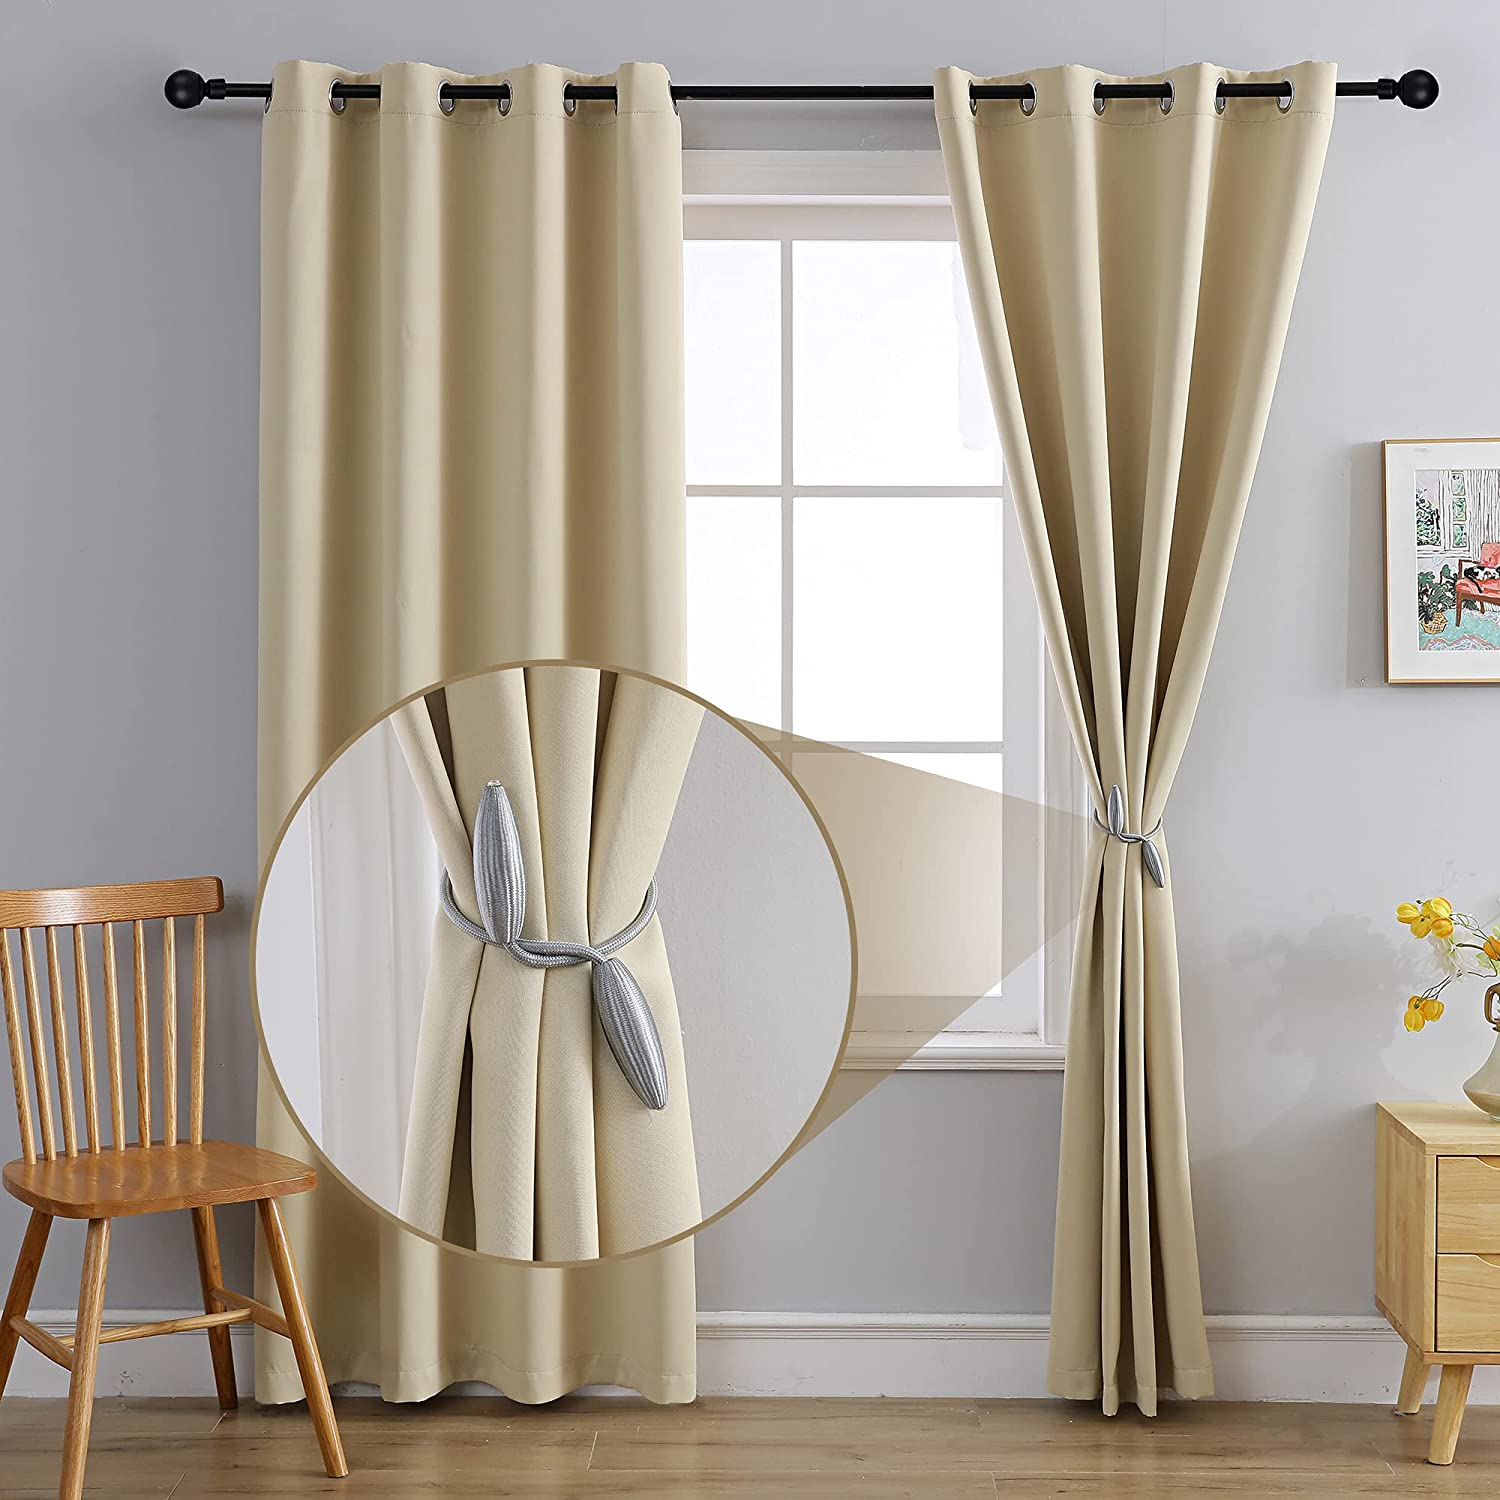 MOFV Blackout Curtain Panels - Home Decor Grommet Top Solid Room Darkening Window Treatments, Thermal Insulated Noise Reducing Drapes for Bedroom and Living Room (Creamy White, 52''W x 84''L)